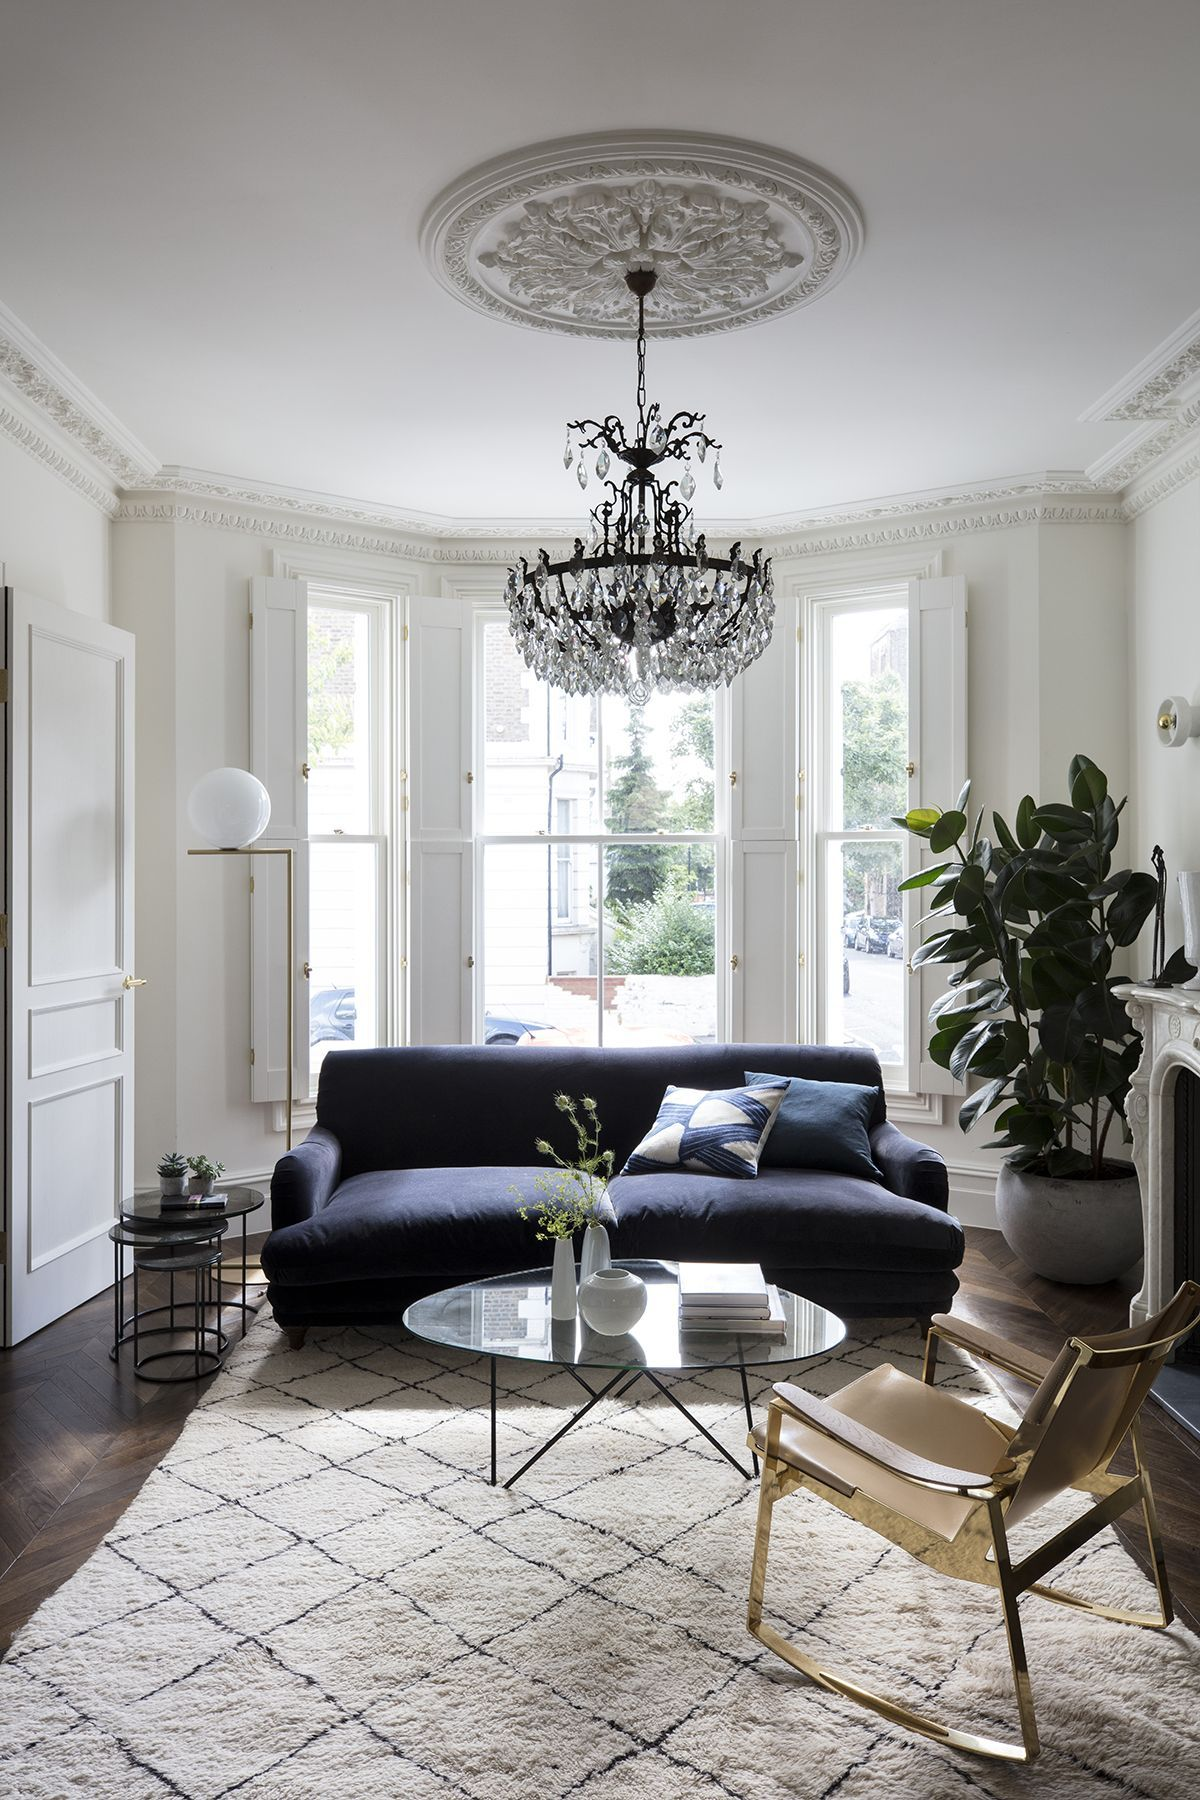 Take A Tour Of This Grand Victorian Home With The Perfect Blend Of Old And New Designs In 2020 Chandelier In Living Room Victorian Living Room Living Room Scandinavian